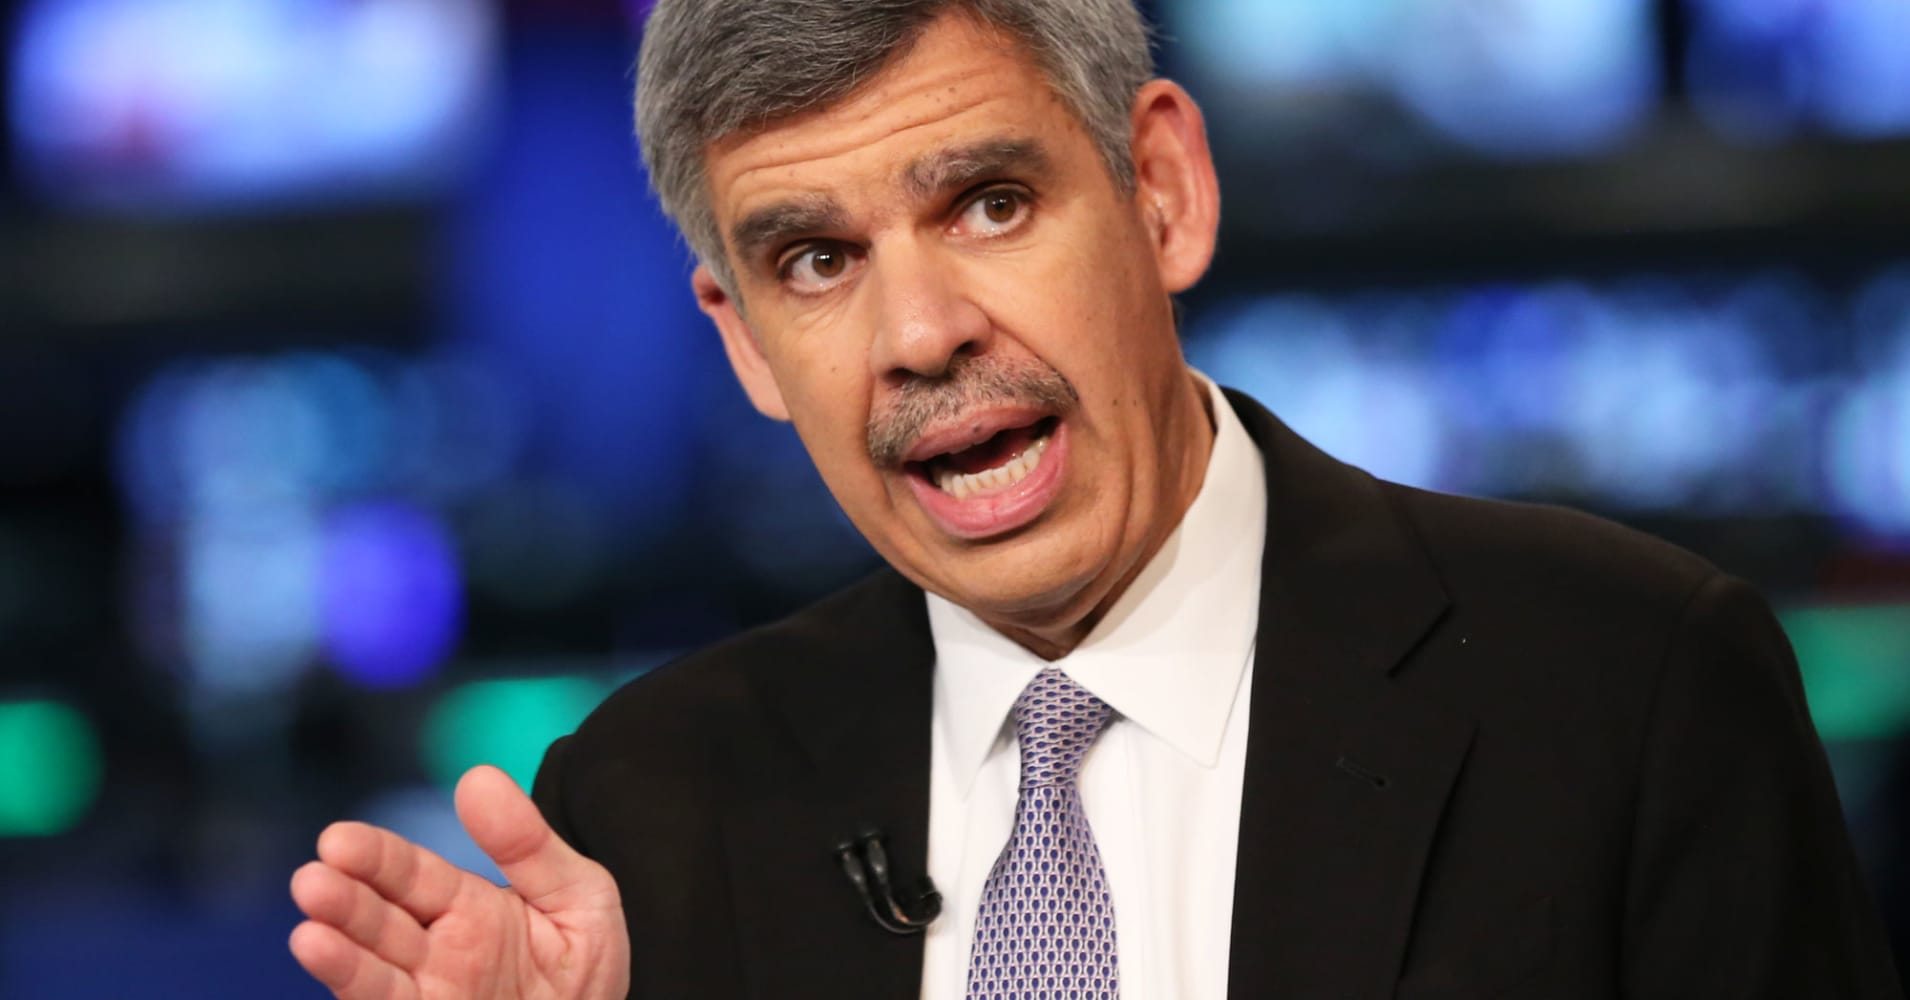 There's a recent trend that may have implications for the market, El-Erian says